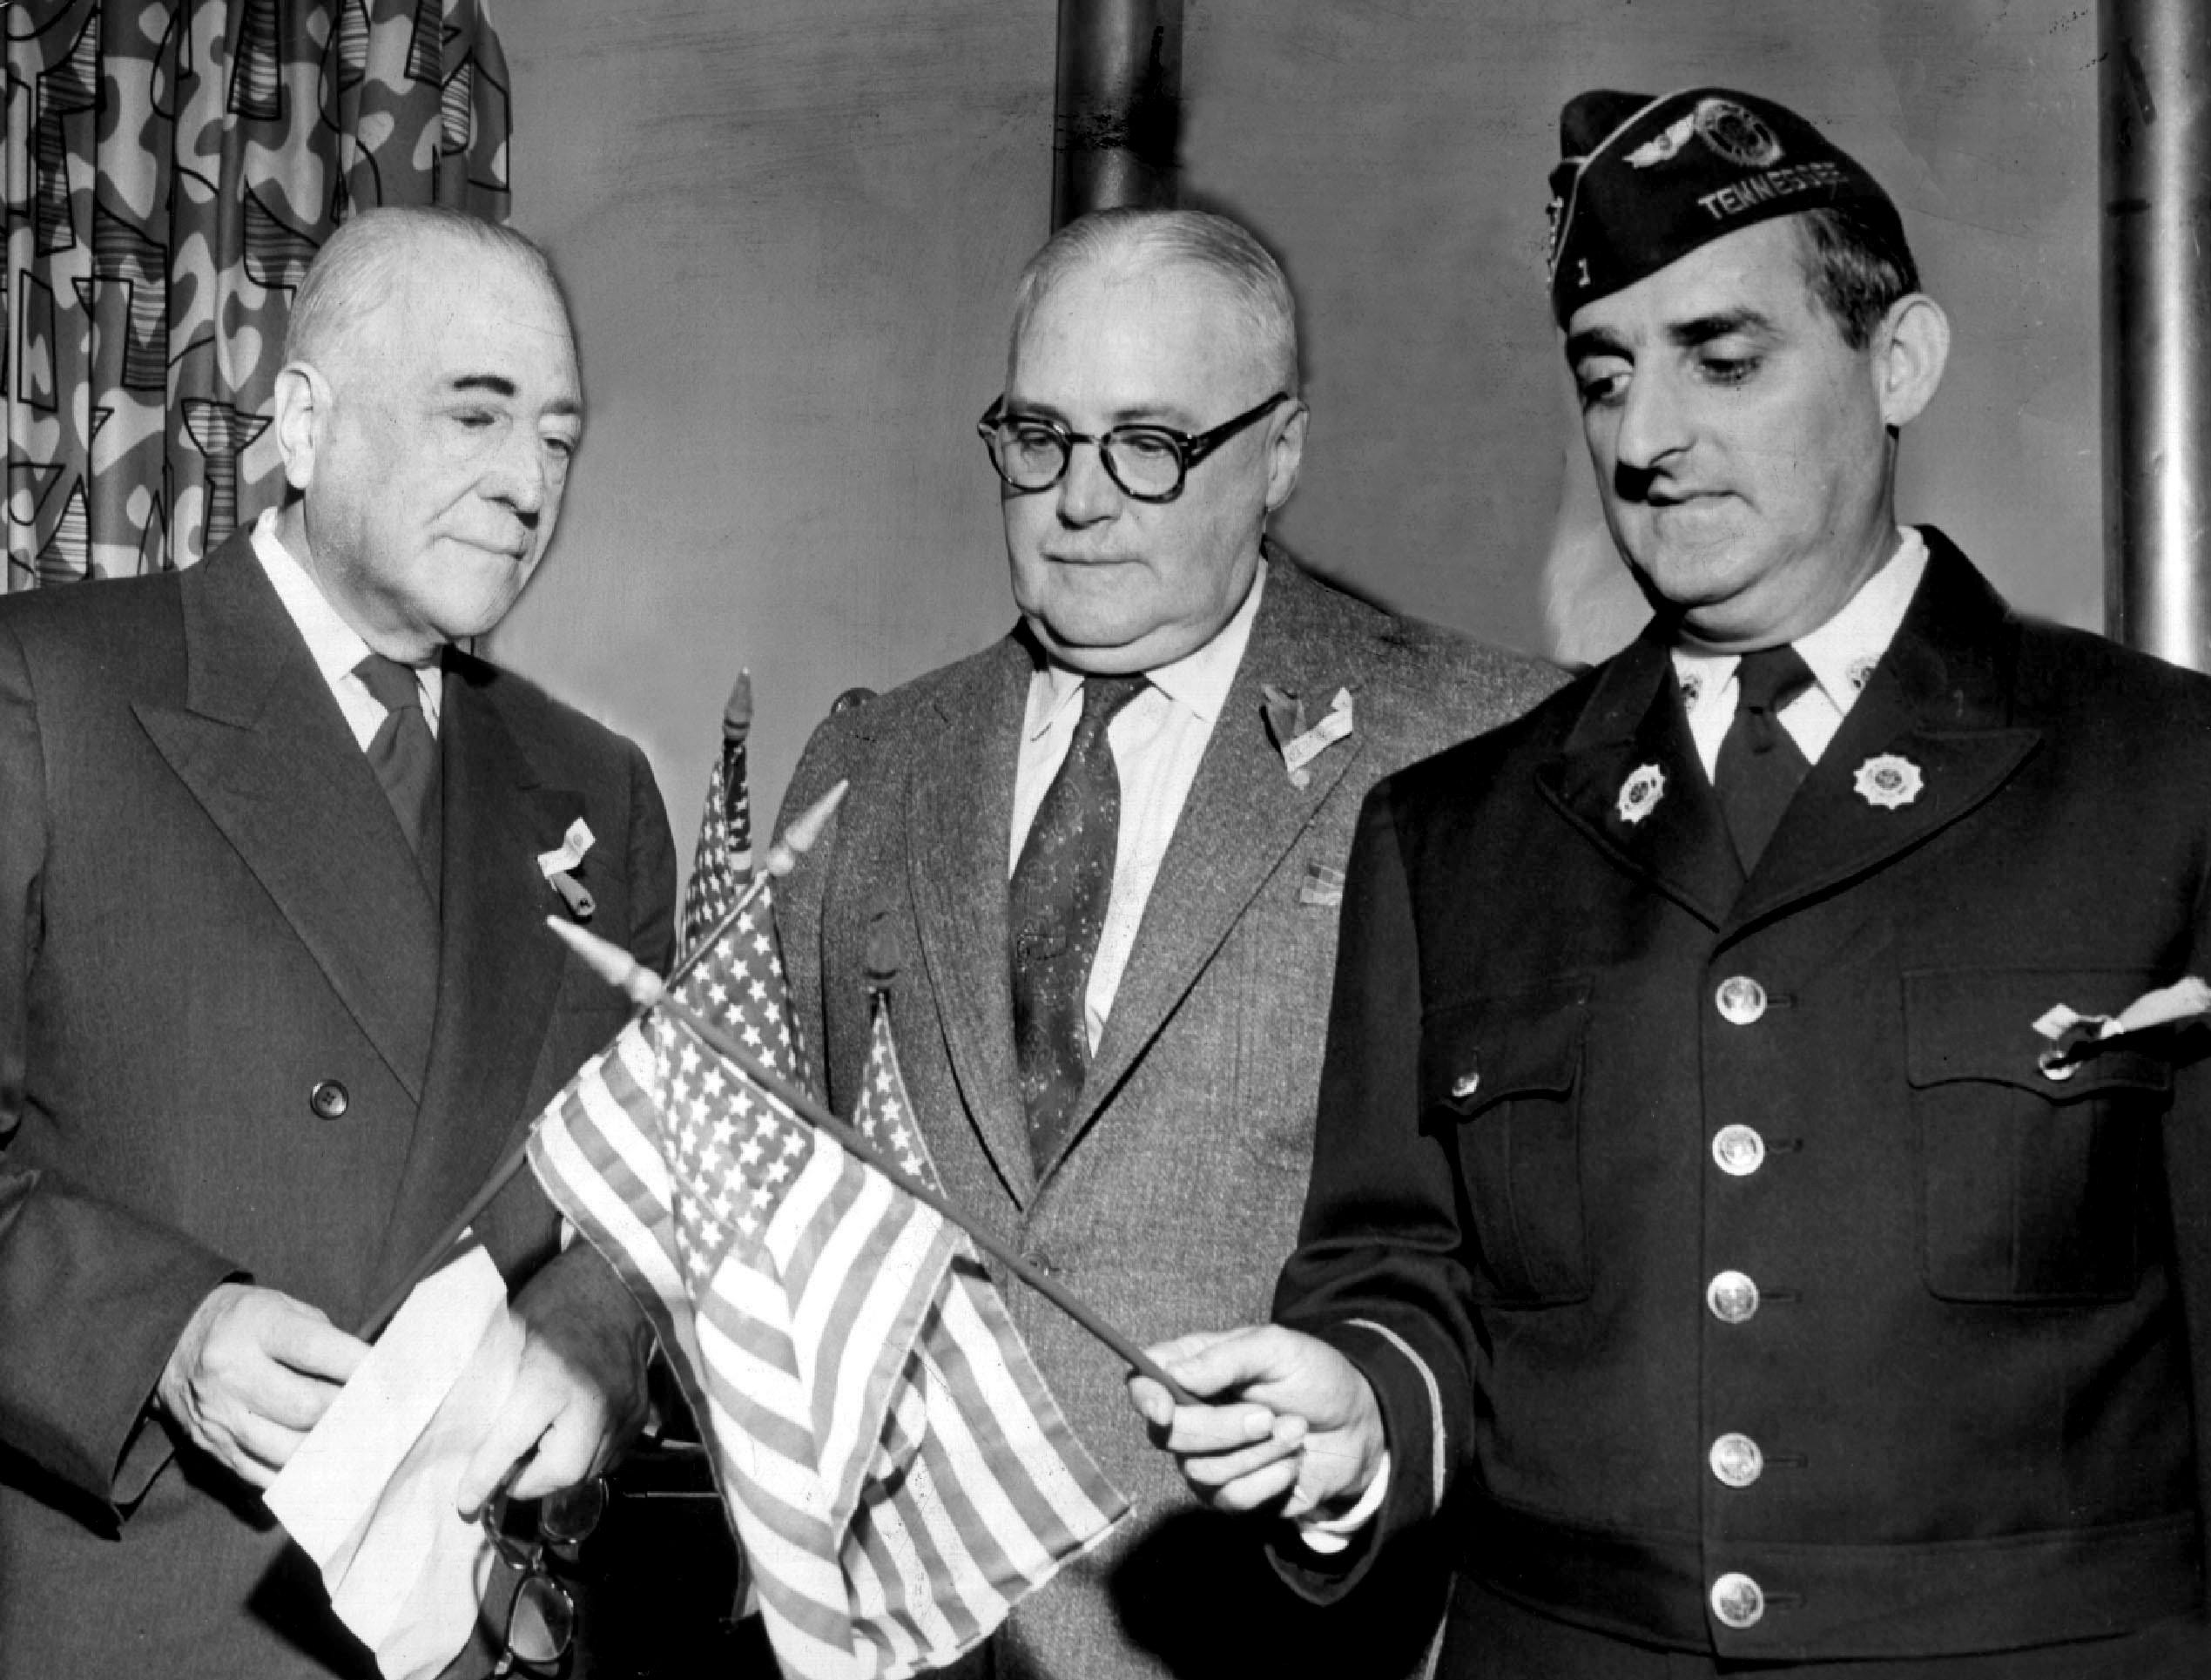 Jack Carley (center), a member of The Commercial Appeal's editorial staff for 39 years, is seen in a photograph dated November 12, 1955. At left is W. Percy McDonald Sr and Sam Friedman is at right. Carley was born near Ottawa, Ontario, Canada, and served in the British Army in World War I. He was a newspaperman in Los Angeles and Chicago before coming to Memphis in 1923. He joined The Commercial Appeal's staff as a reporter and was promoted to the positions of city editor, managing editor and editorial writer. Carley's editorials won him many honors, and he was best known for his writings on law enforcement, Mississippi River flood control and military preparedness. At the request of his close friend, FBI Director J. Edgar Hoover, Carley spoke many times to graduating classes of the National Academy of the Federal Bureau of Investigation. Carley was a longtime member of the Memphis and Shelby County Port Commission; and in 1962, shortly after his death, the commission adopted a resolution to honor Carley by naming the causeway for him.